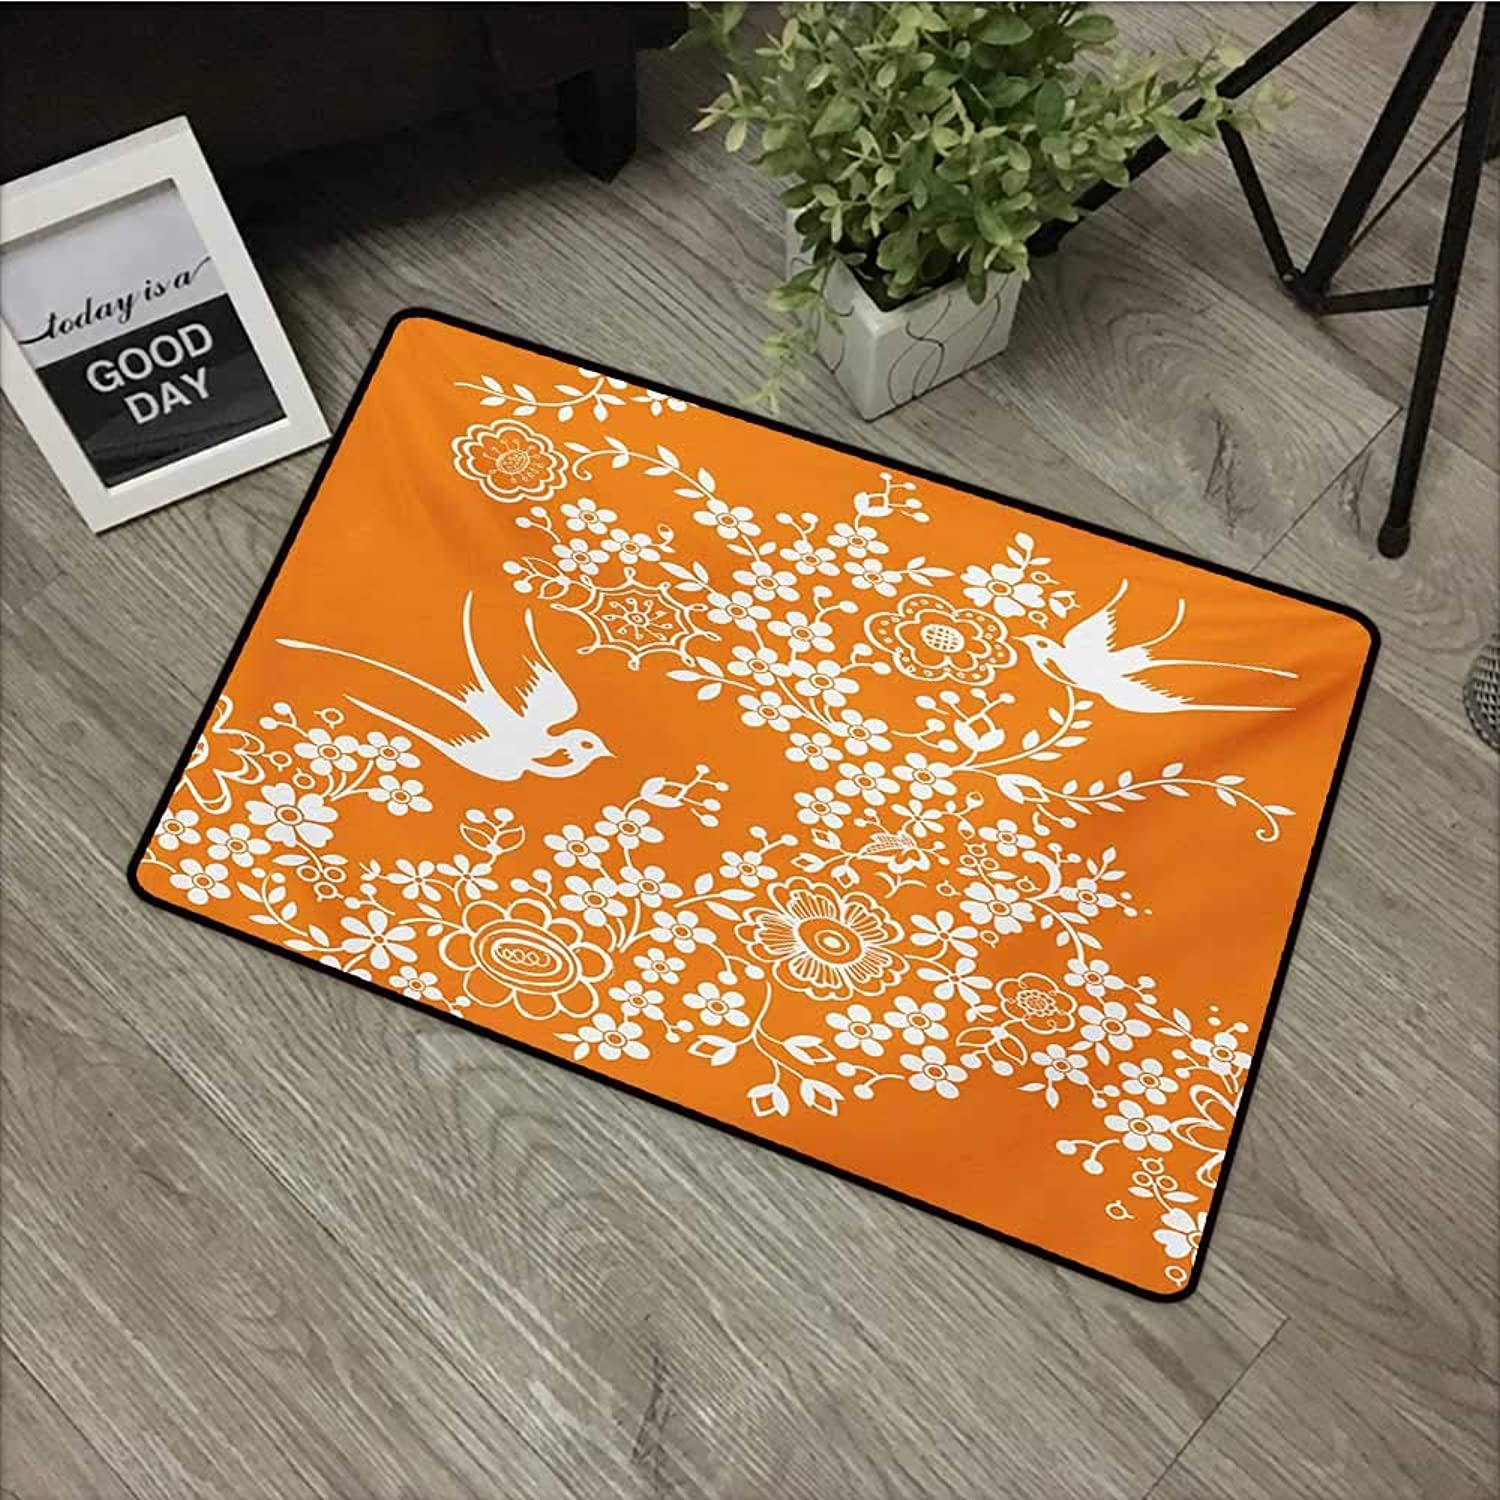 Square Door mat W24 x L35 INCH orange and White,Asian Flora and Fauna Doodle Style Bird Silhouettes and Flowers,orange and White Easy to Clean, no Deformation, no Fading Non-Slip Door Mat Carpet